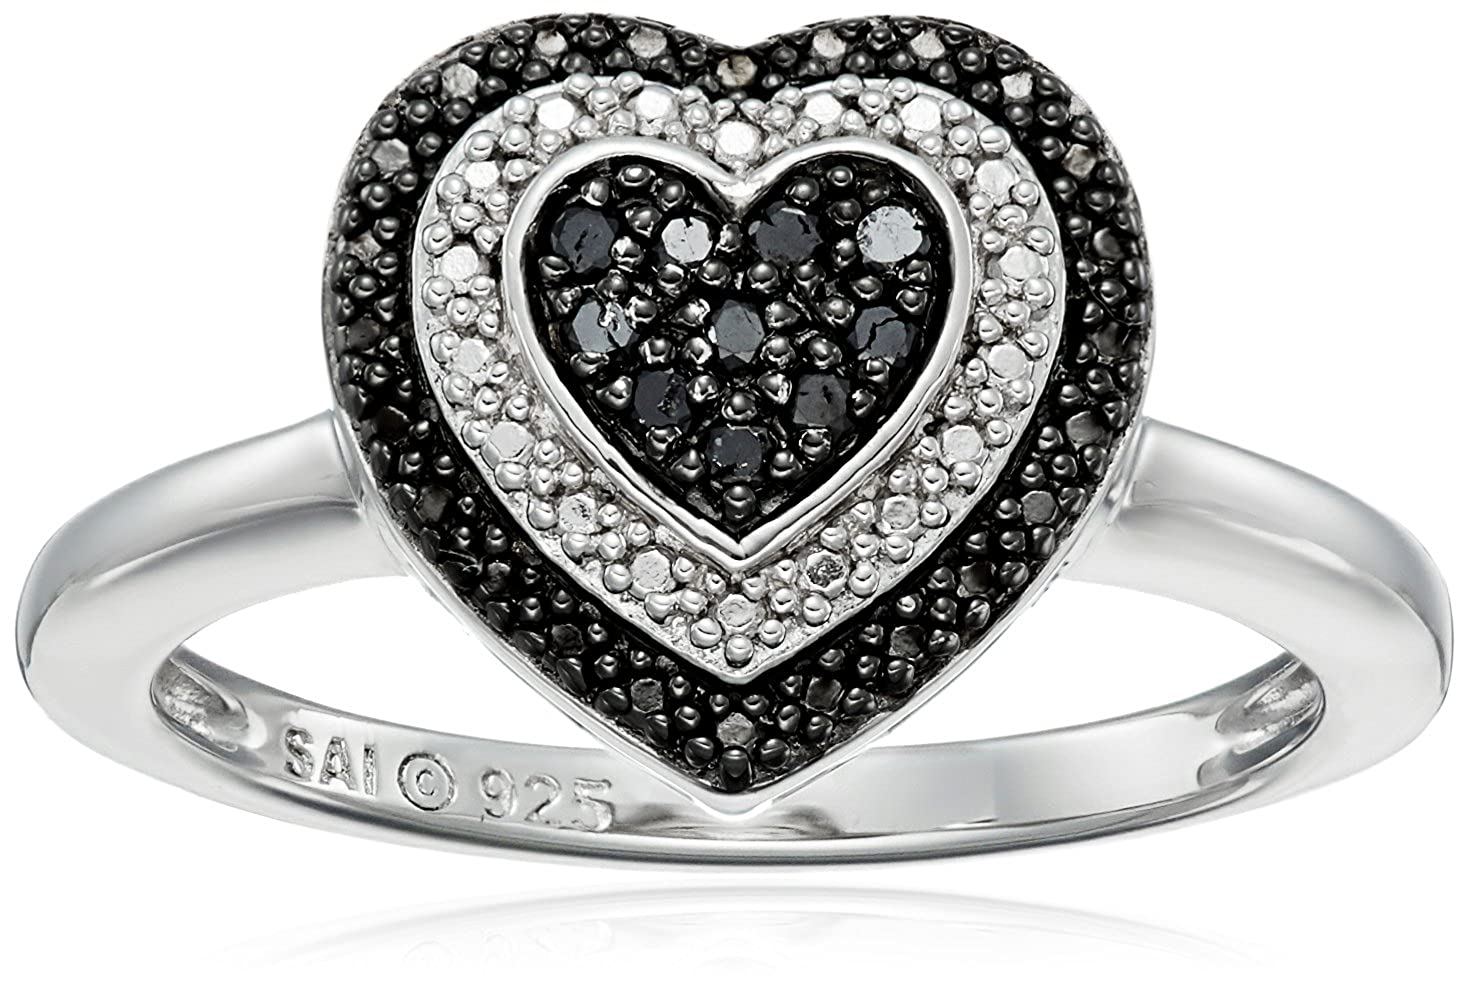 Sterling Silver 1/10cttw Black Diamond Heart Ring, Size 7 Amazon Collection 07630BDZZSG1